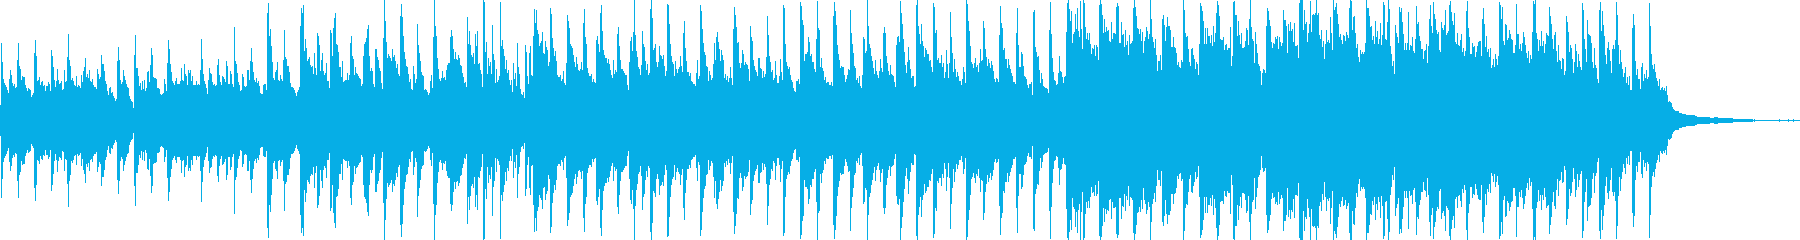 Acoustic pop for refreshing images's reproduced waveform